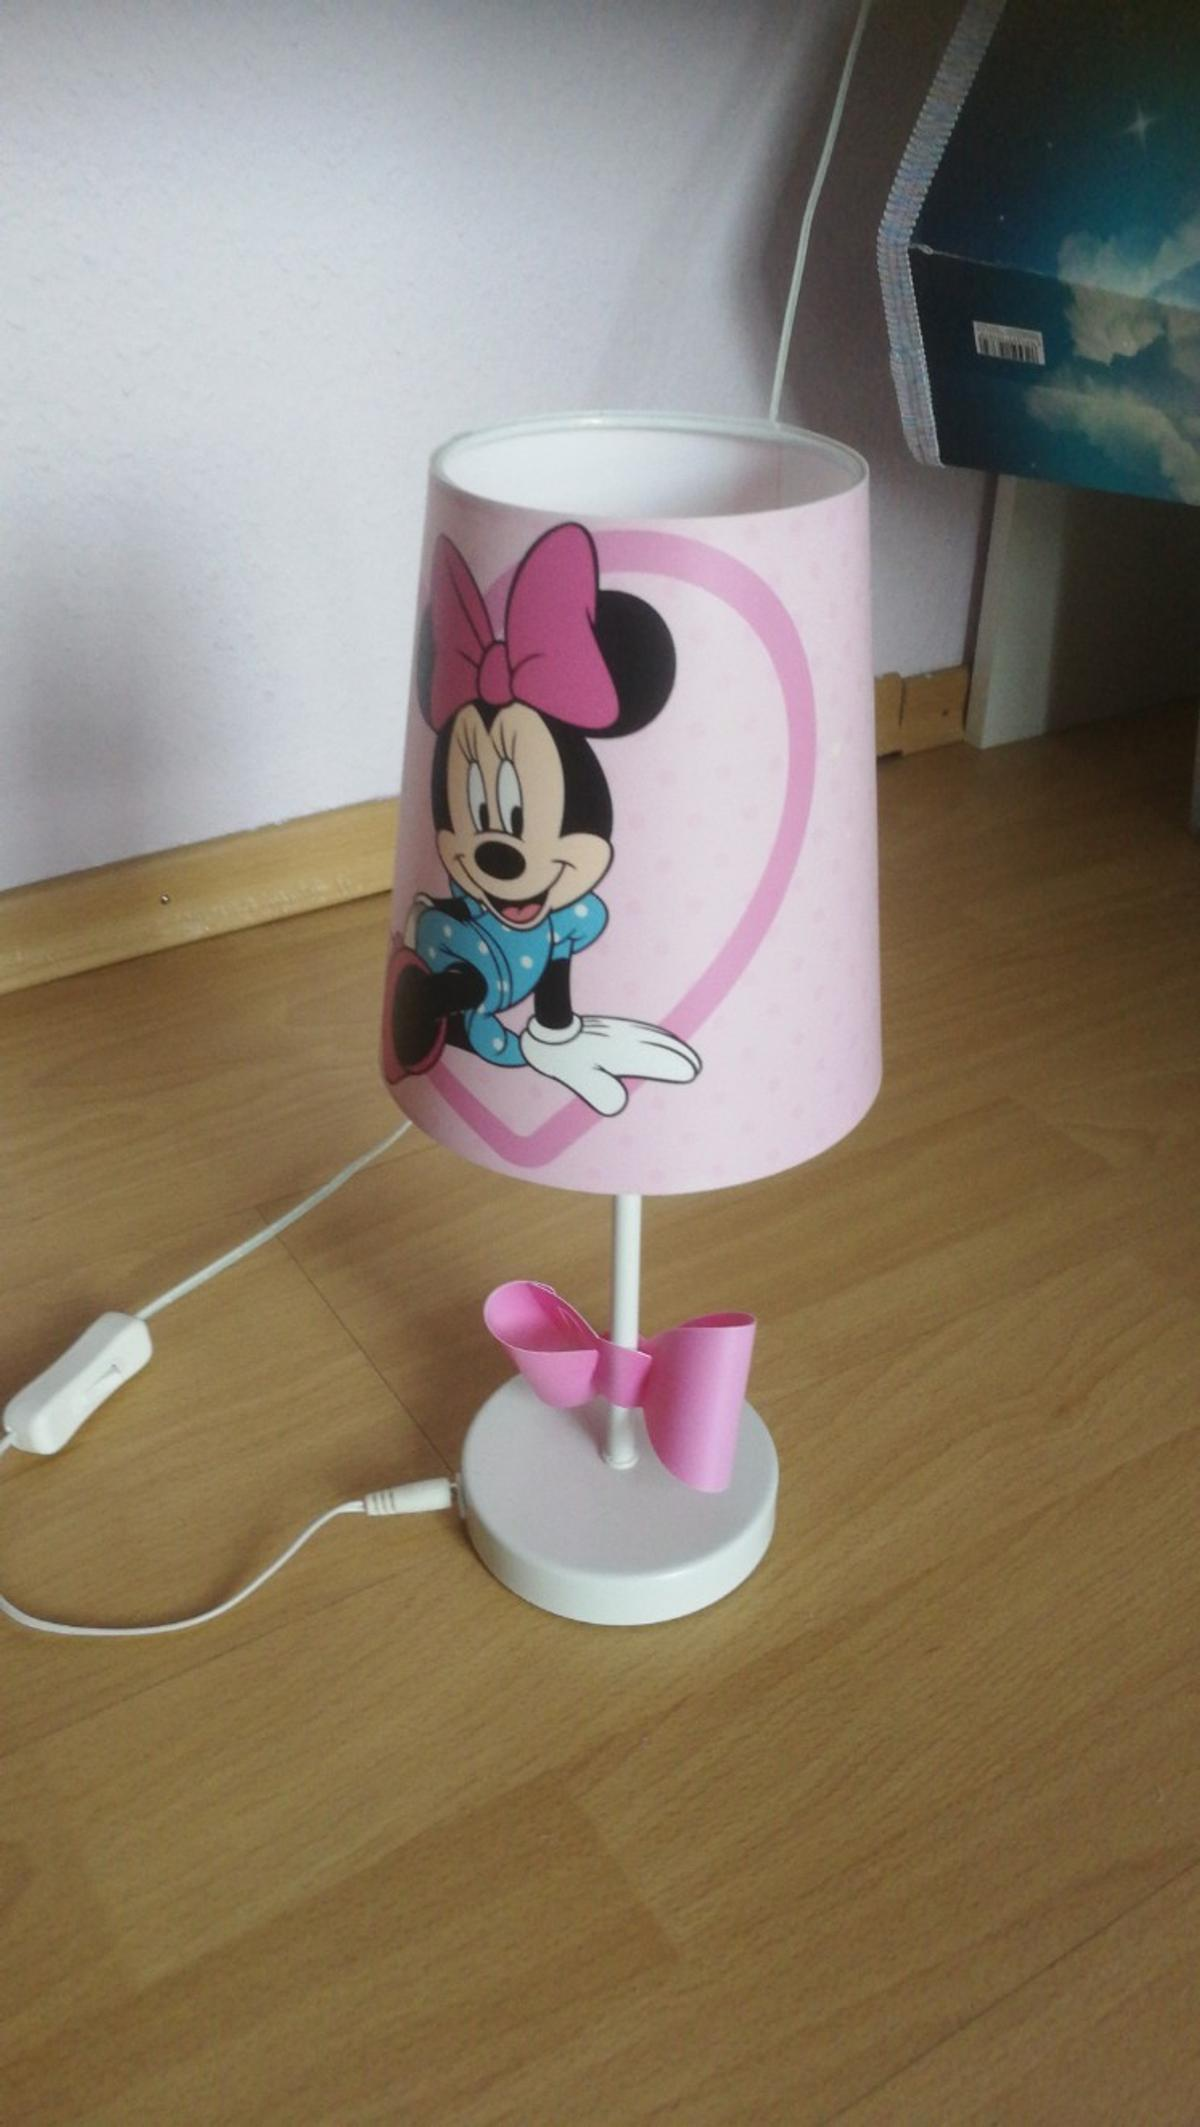 Minnie Maus lampe in 67122 Altrip for €15.00 for sale - Shpock